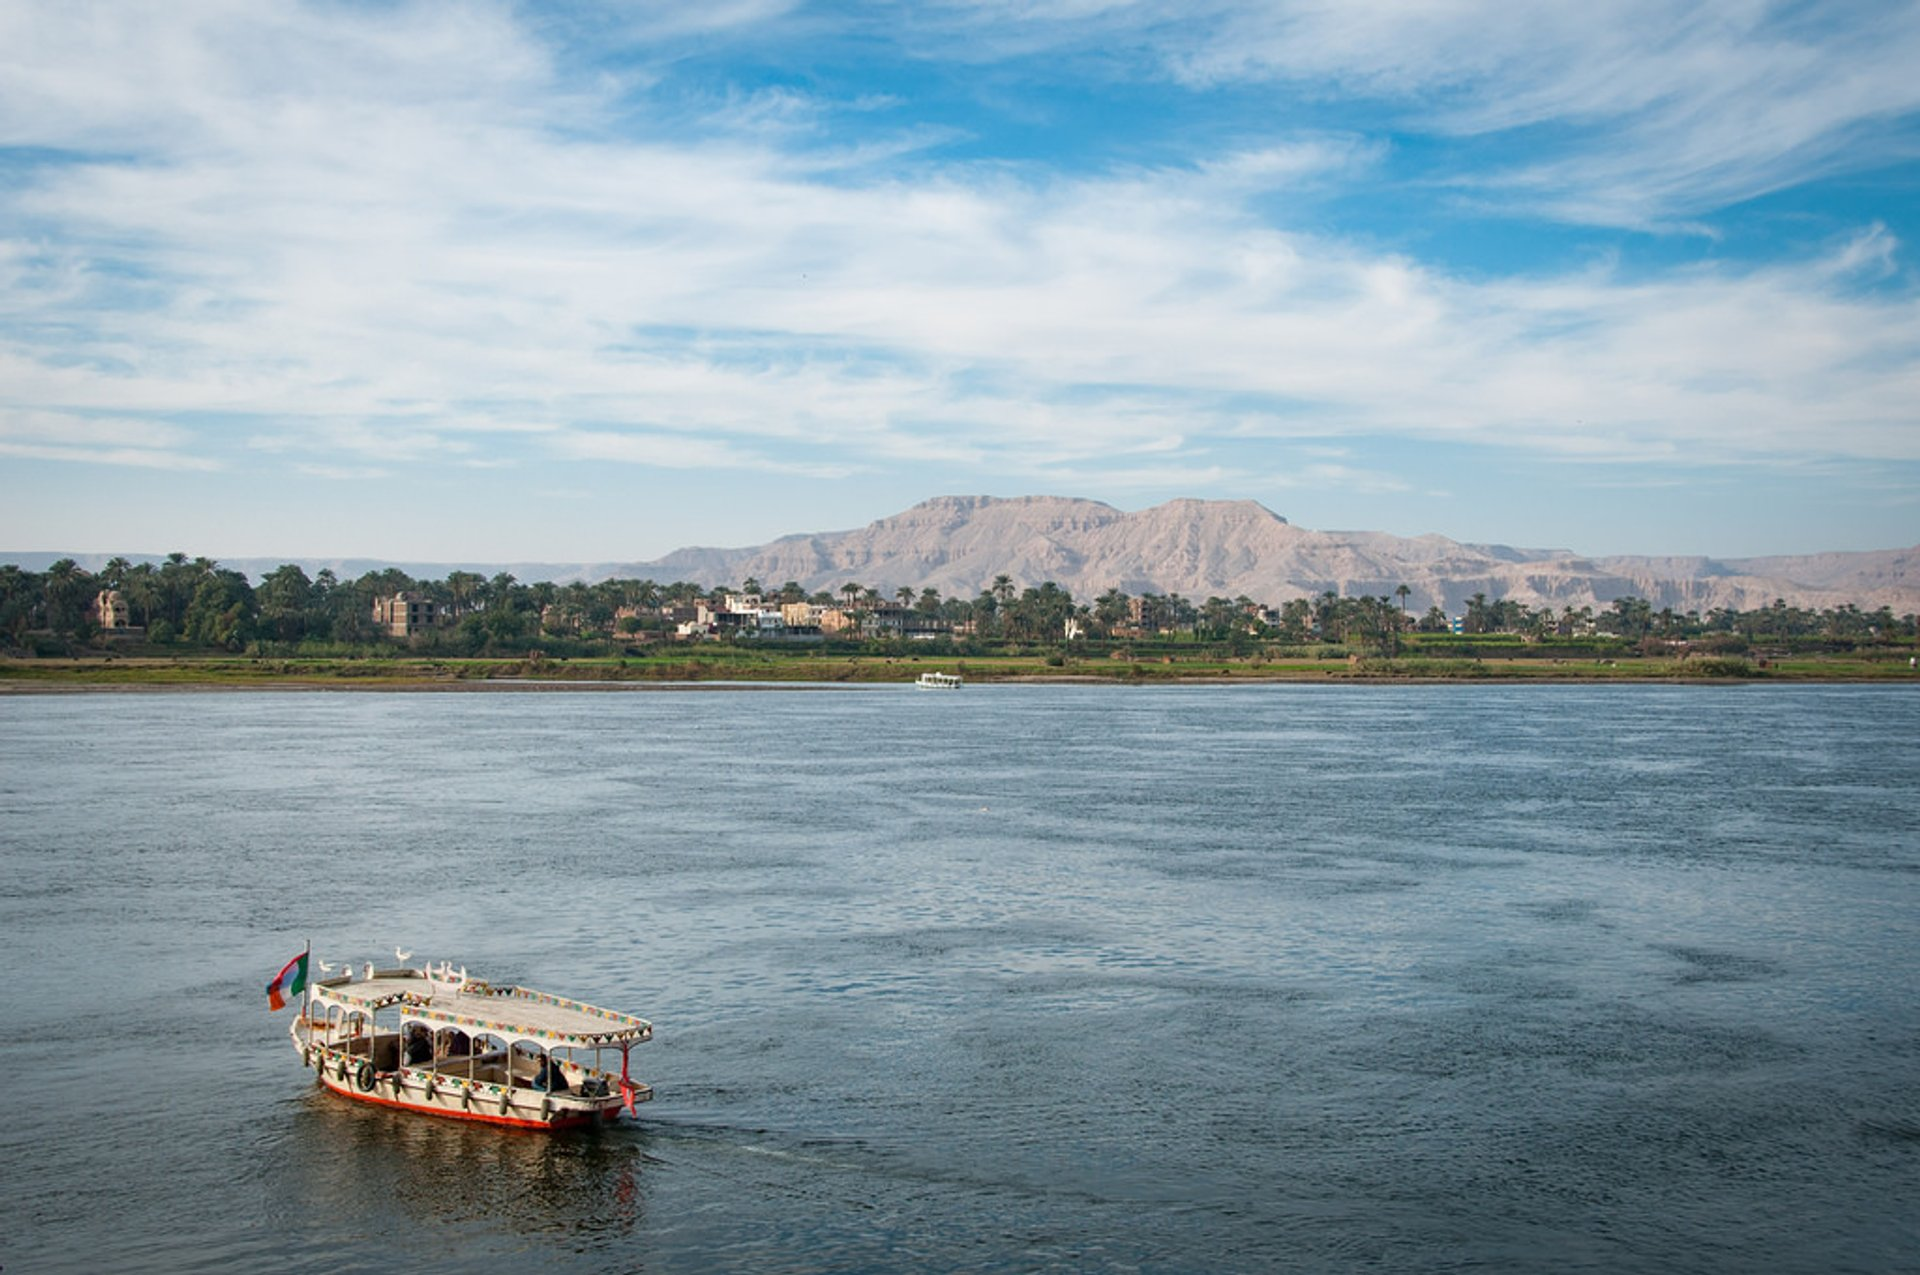 Nile River Cruise in Egypt 2020 - Best Time